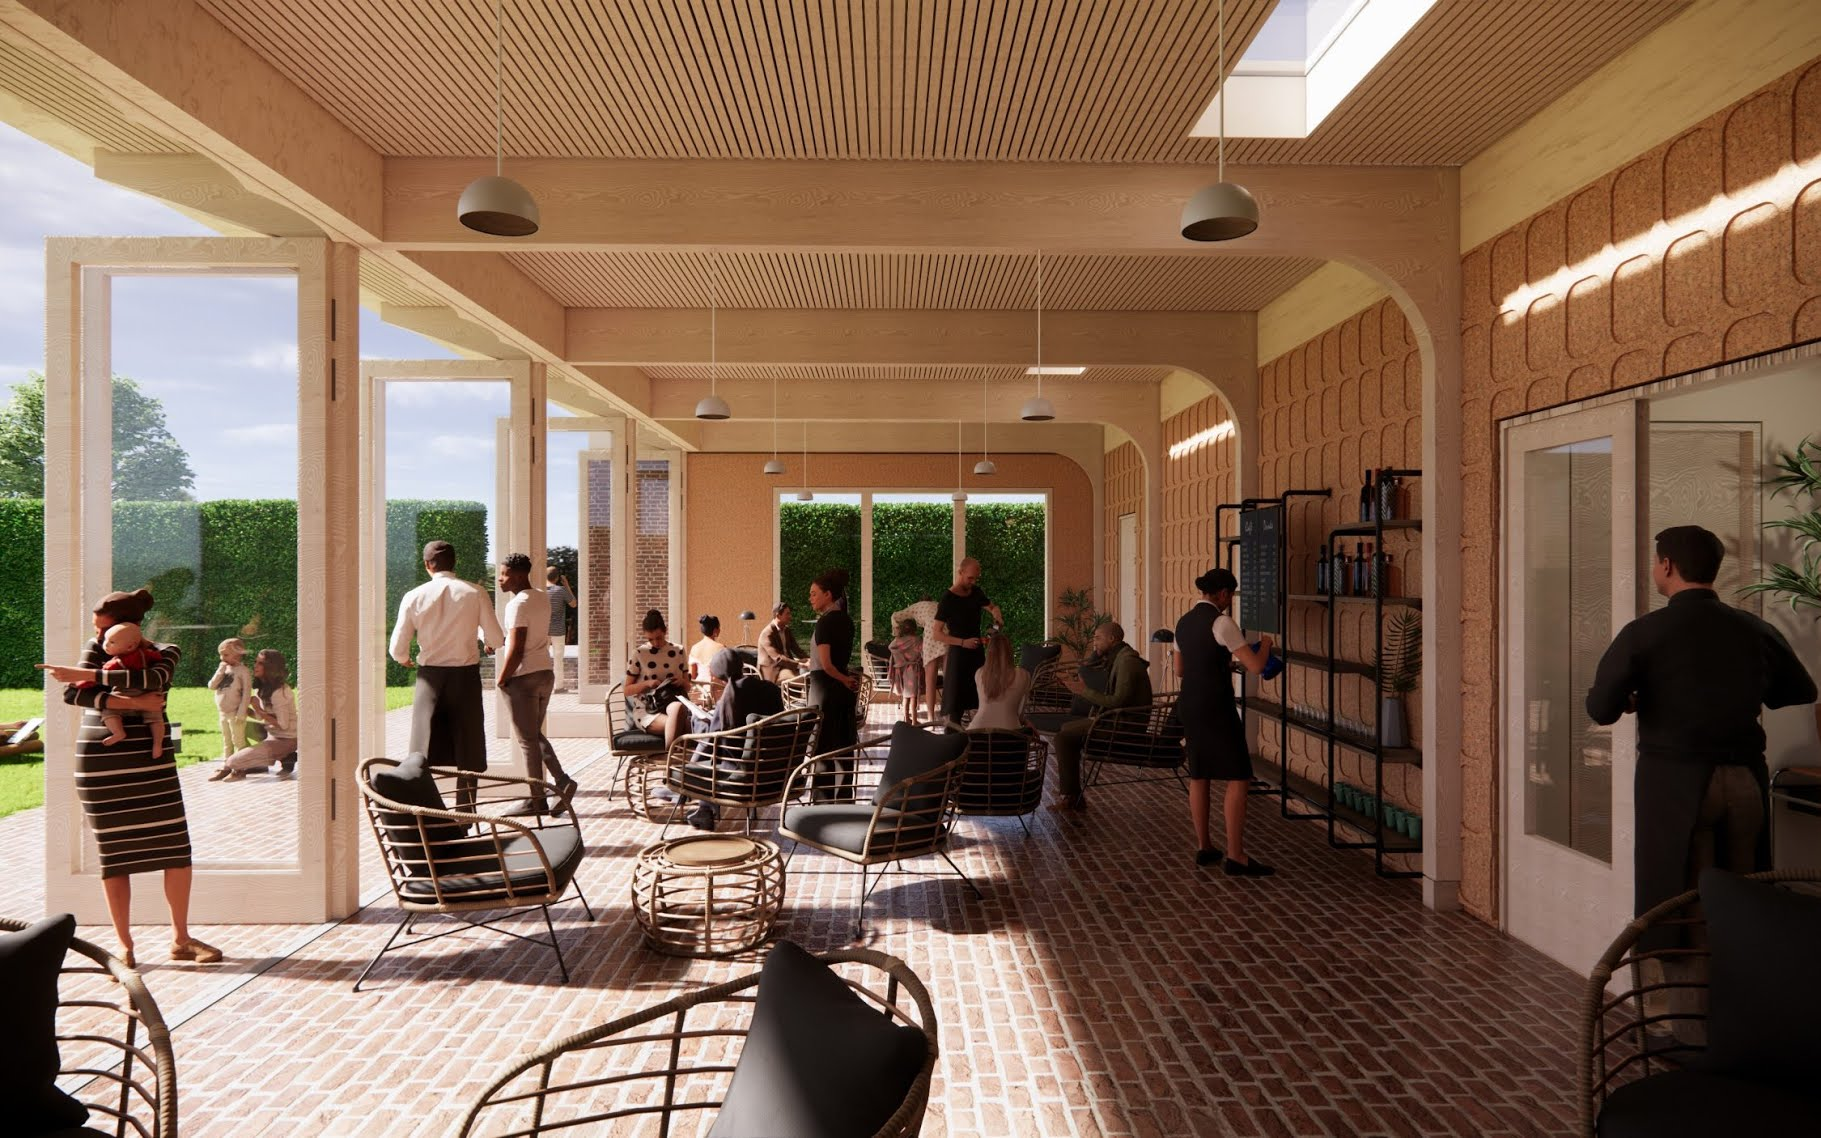 Glyndebourne shells out for new dining space made from oyster and lobster leftovers